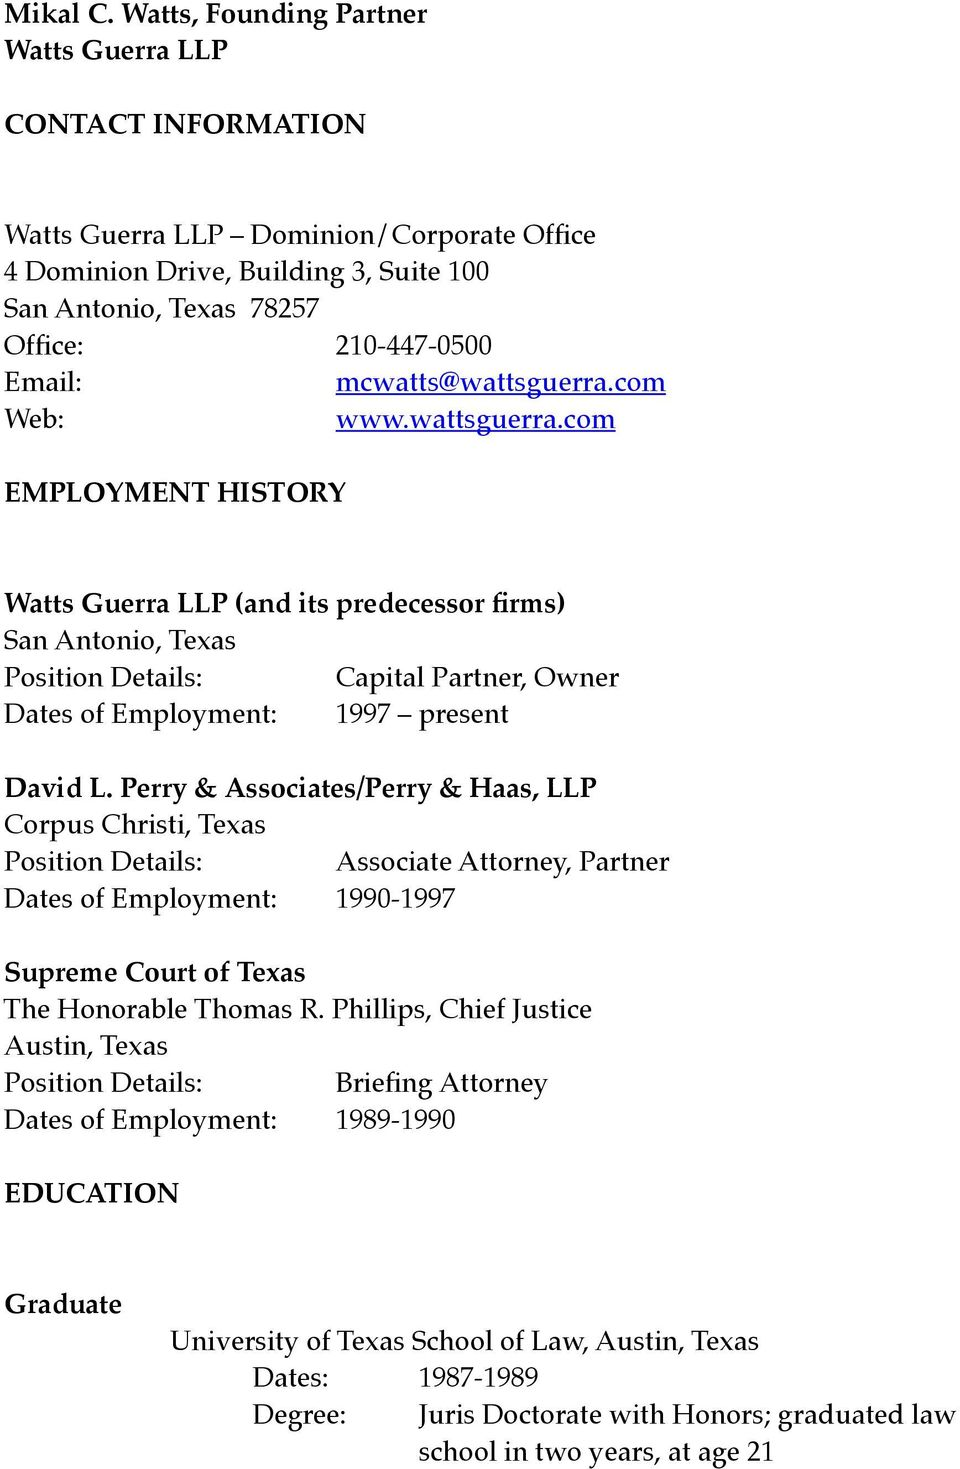 mcwatts@wattsguerra.com Web: www.wattsguerra.com EMPLOYMENT HISTORY Watts Guerra LLP (and its predecessor firms) San Antonio, Texas Position Details: Capital Partner, Owner Dates of Employment: 1997 present David L.